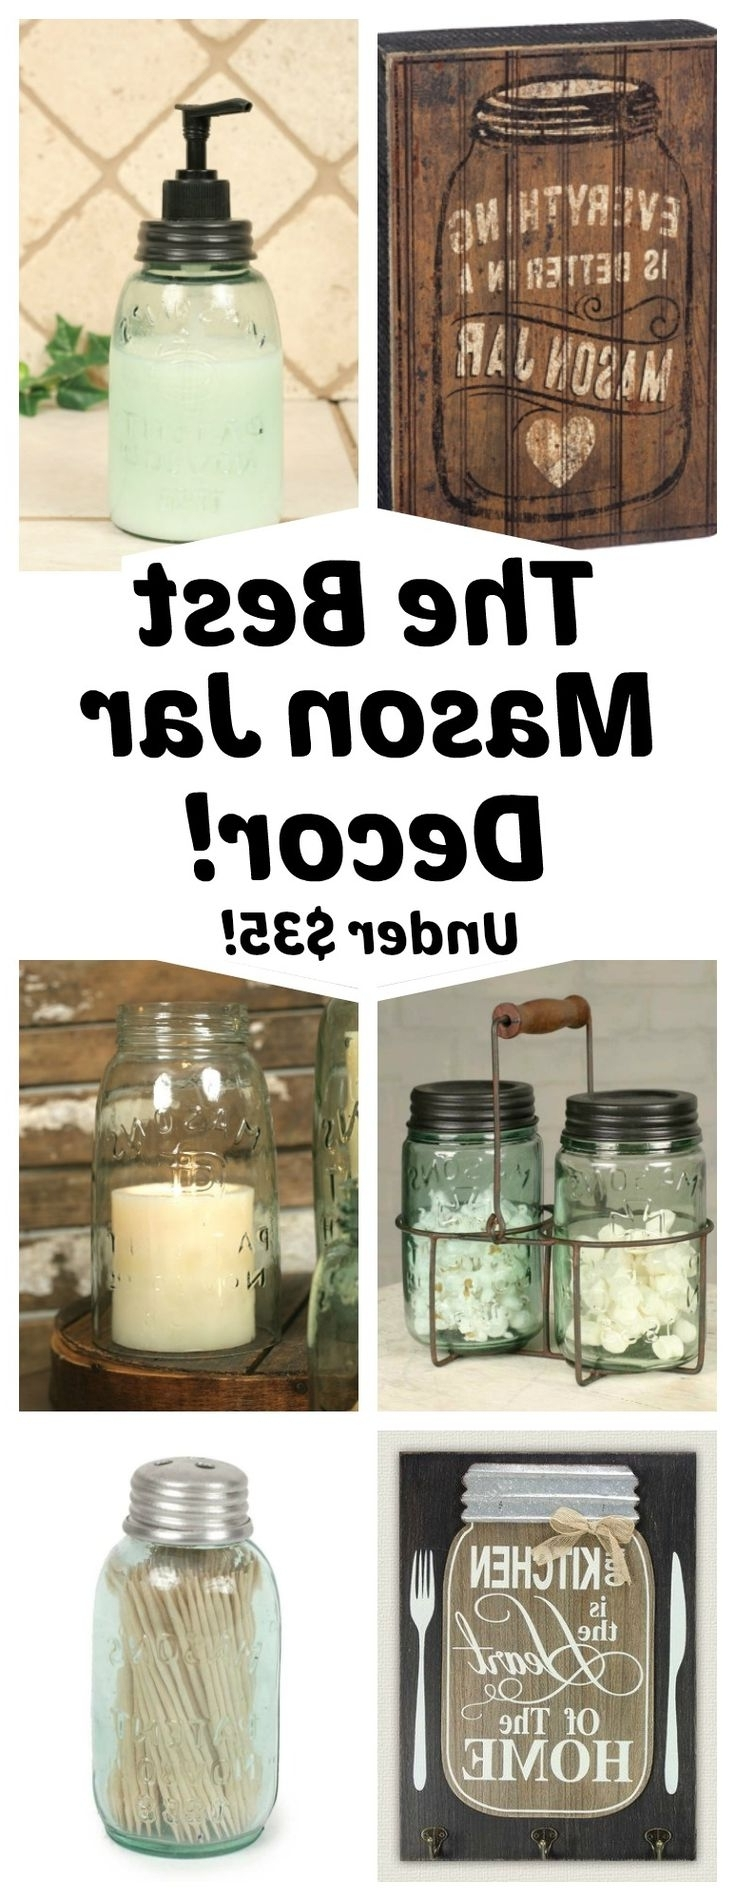 39 Mason Jar Wall Art, Pallet Home Decor Projects Pallets Furniture Intended For Current Mason Jar Wall Art (View 1 of 15)